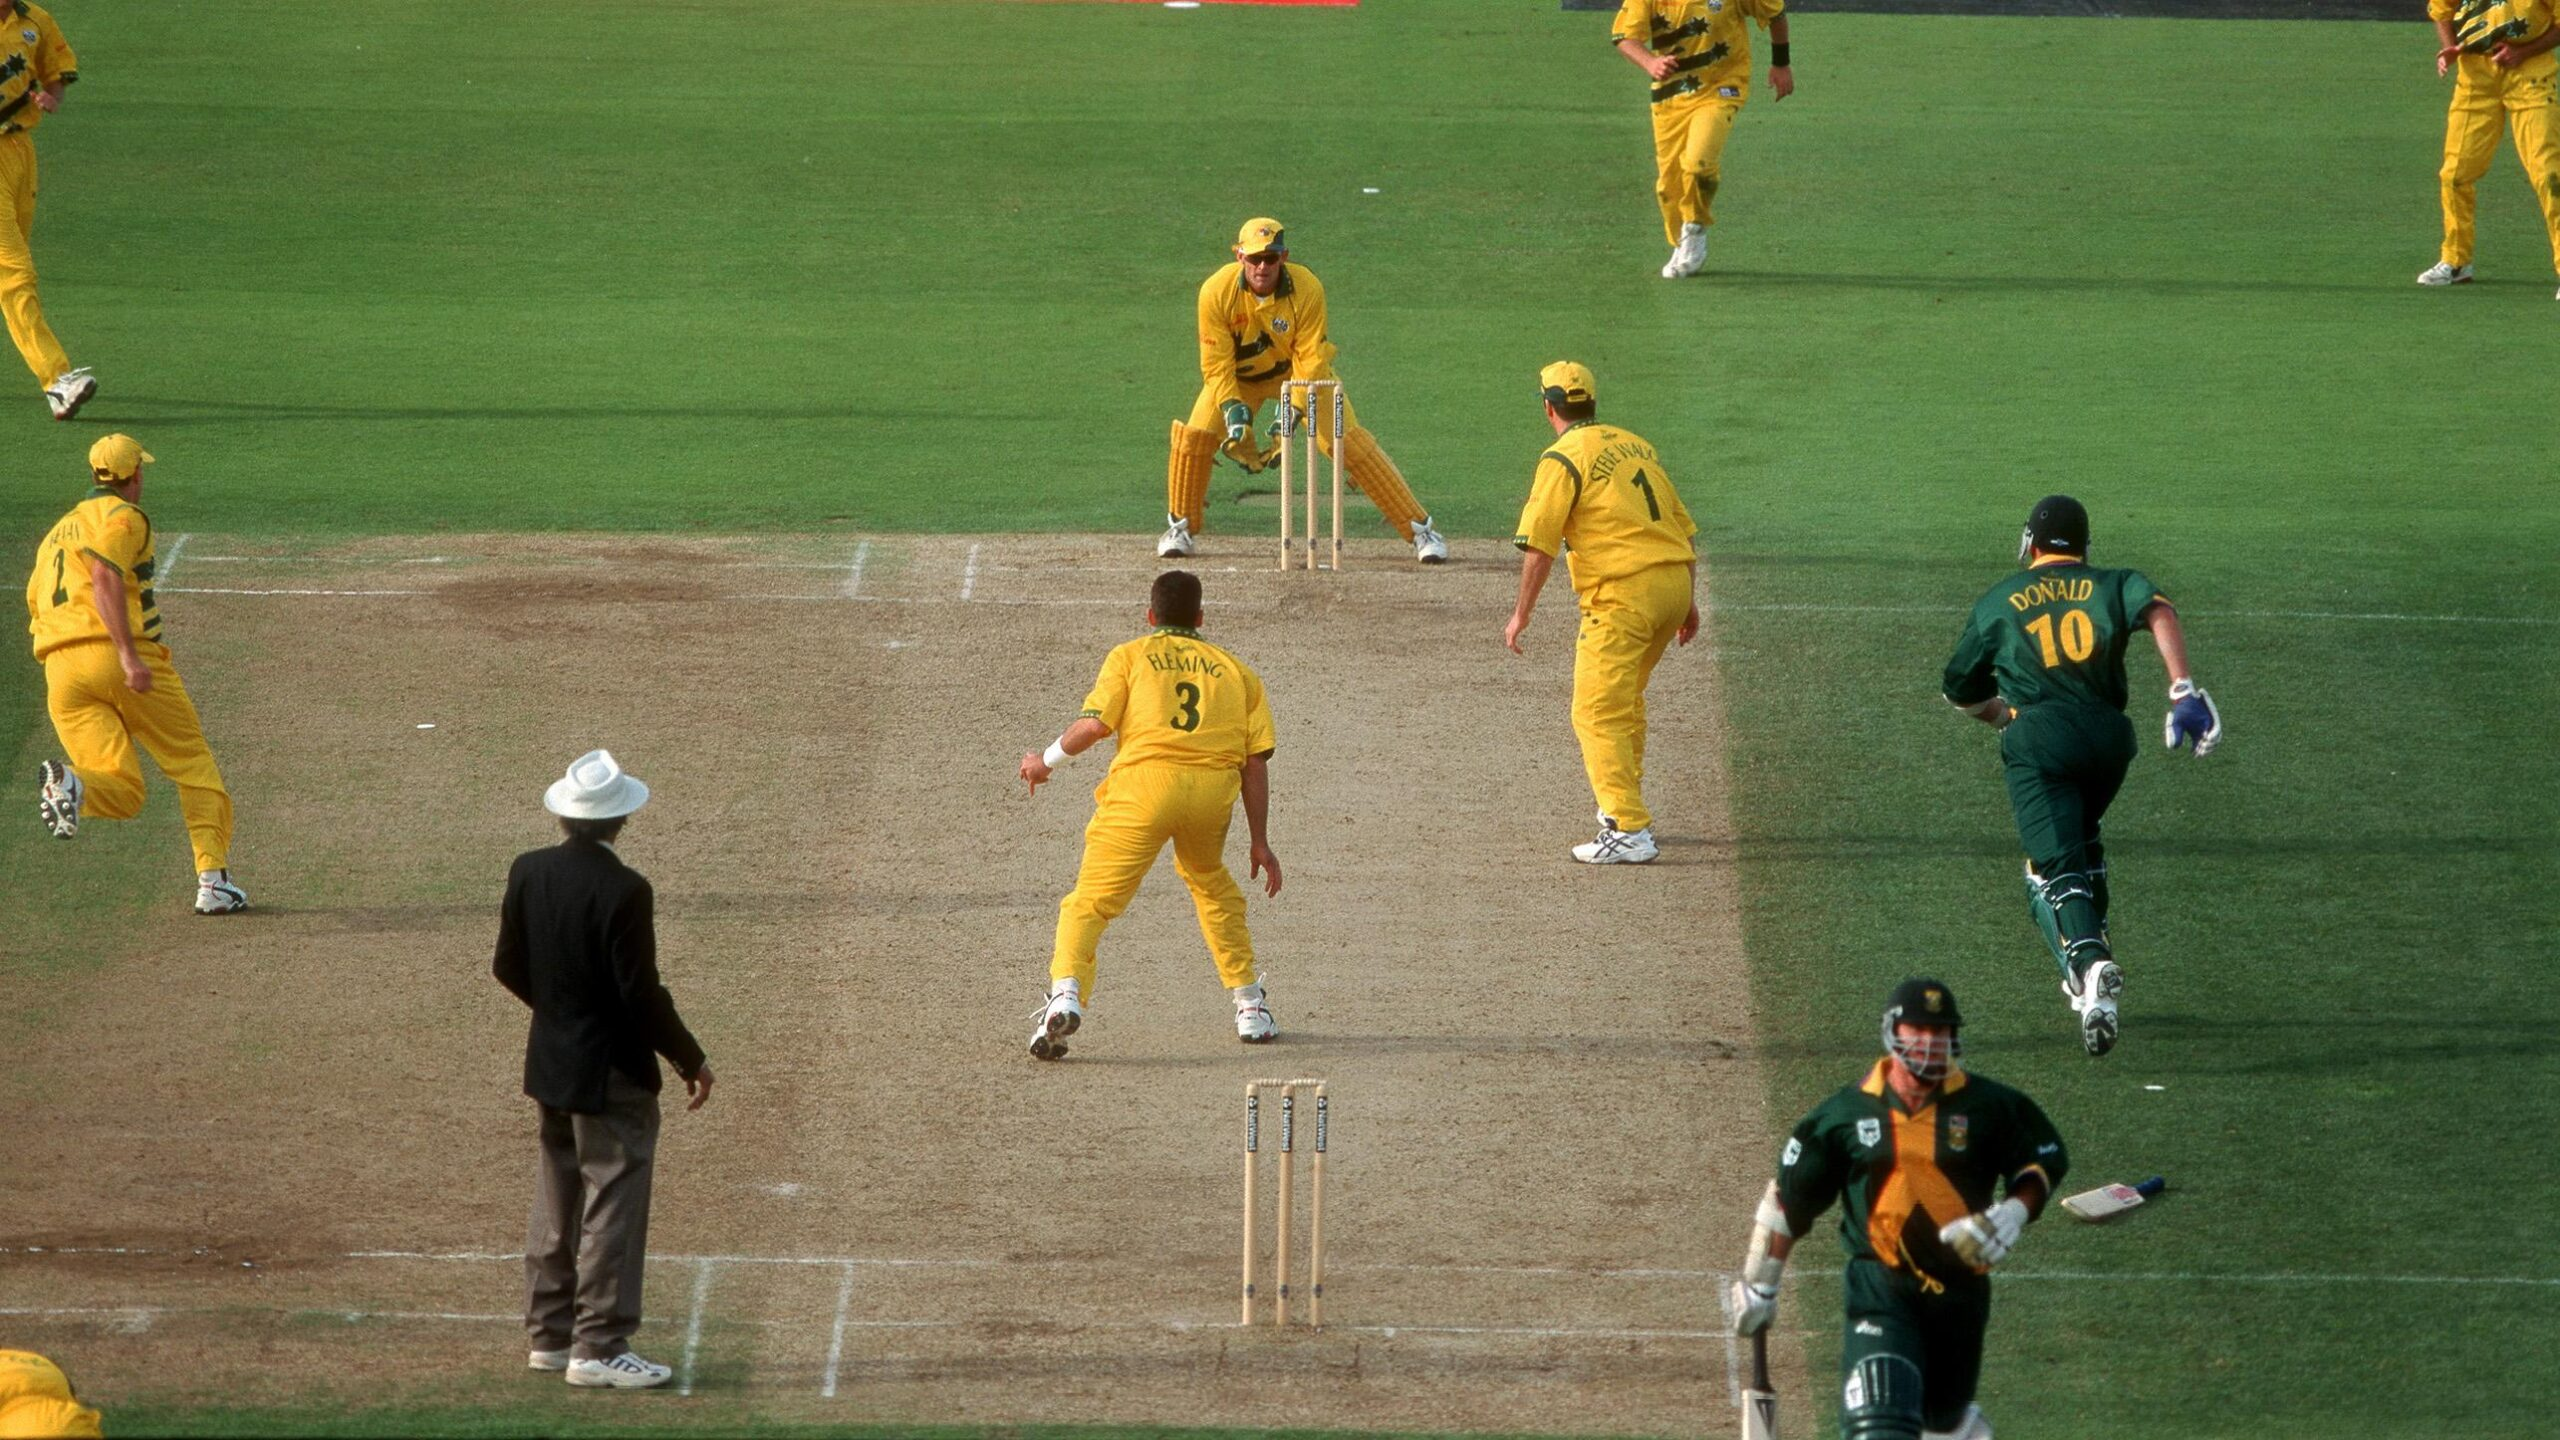 MS Dhoni Perfected The Art Of Taking Games Deep And Finishing It Off In Company Of Tail-enders: Lance Klusener